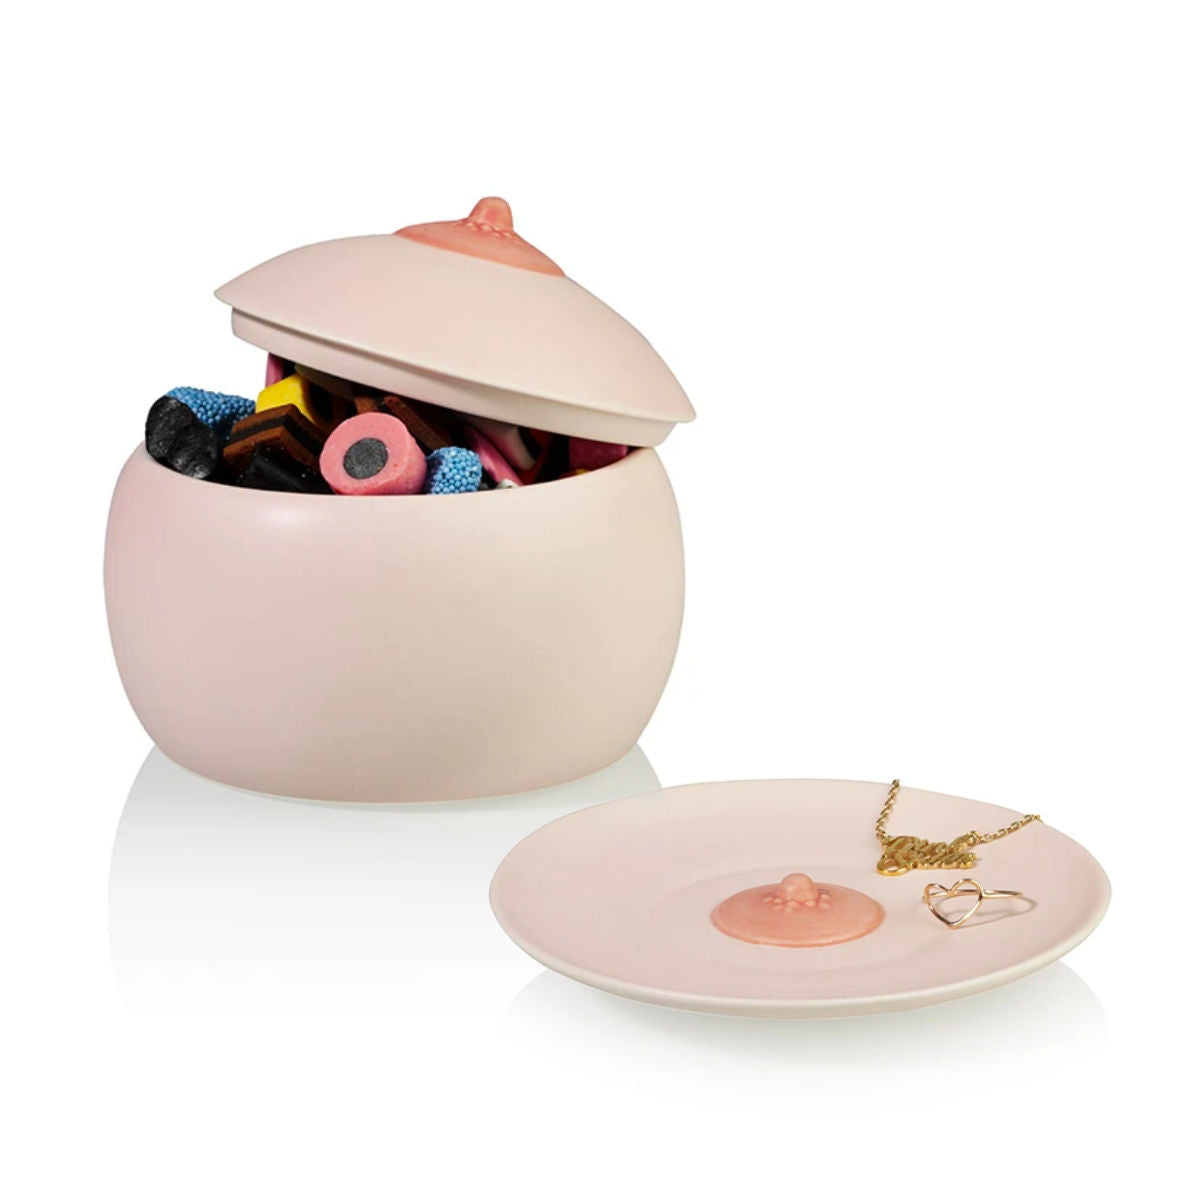 Bitten Design Boob pot & dish set